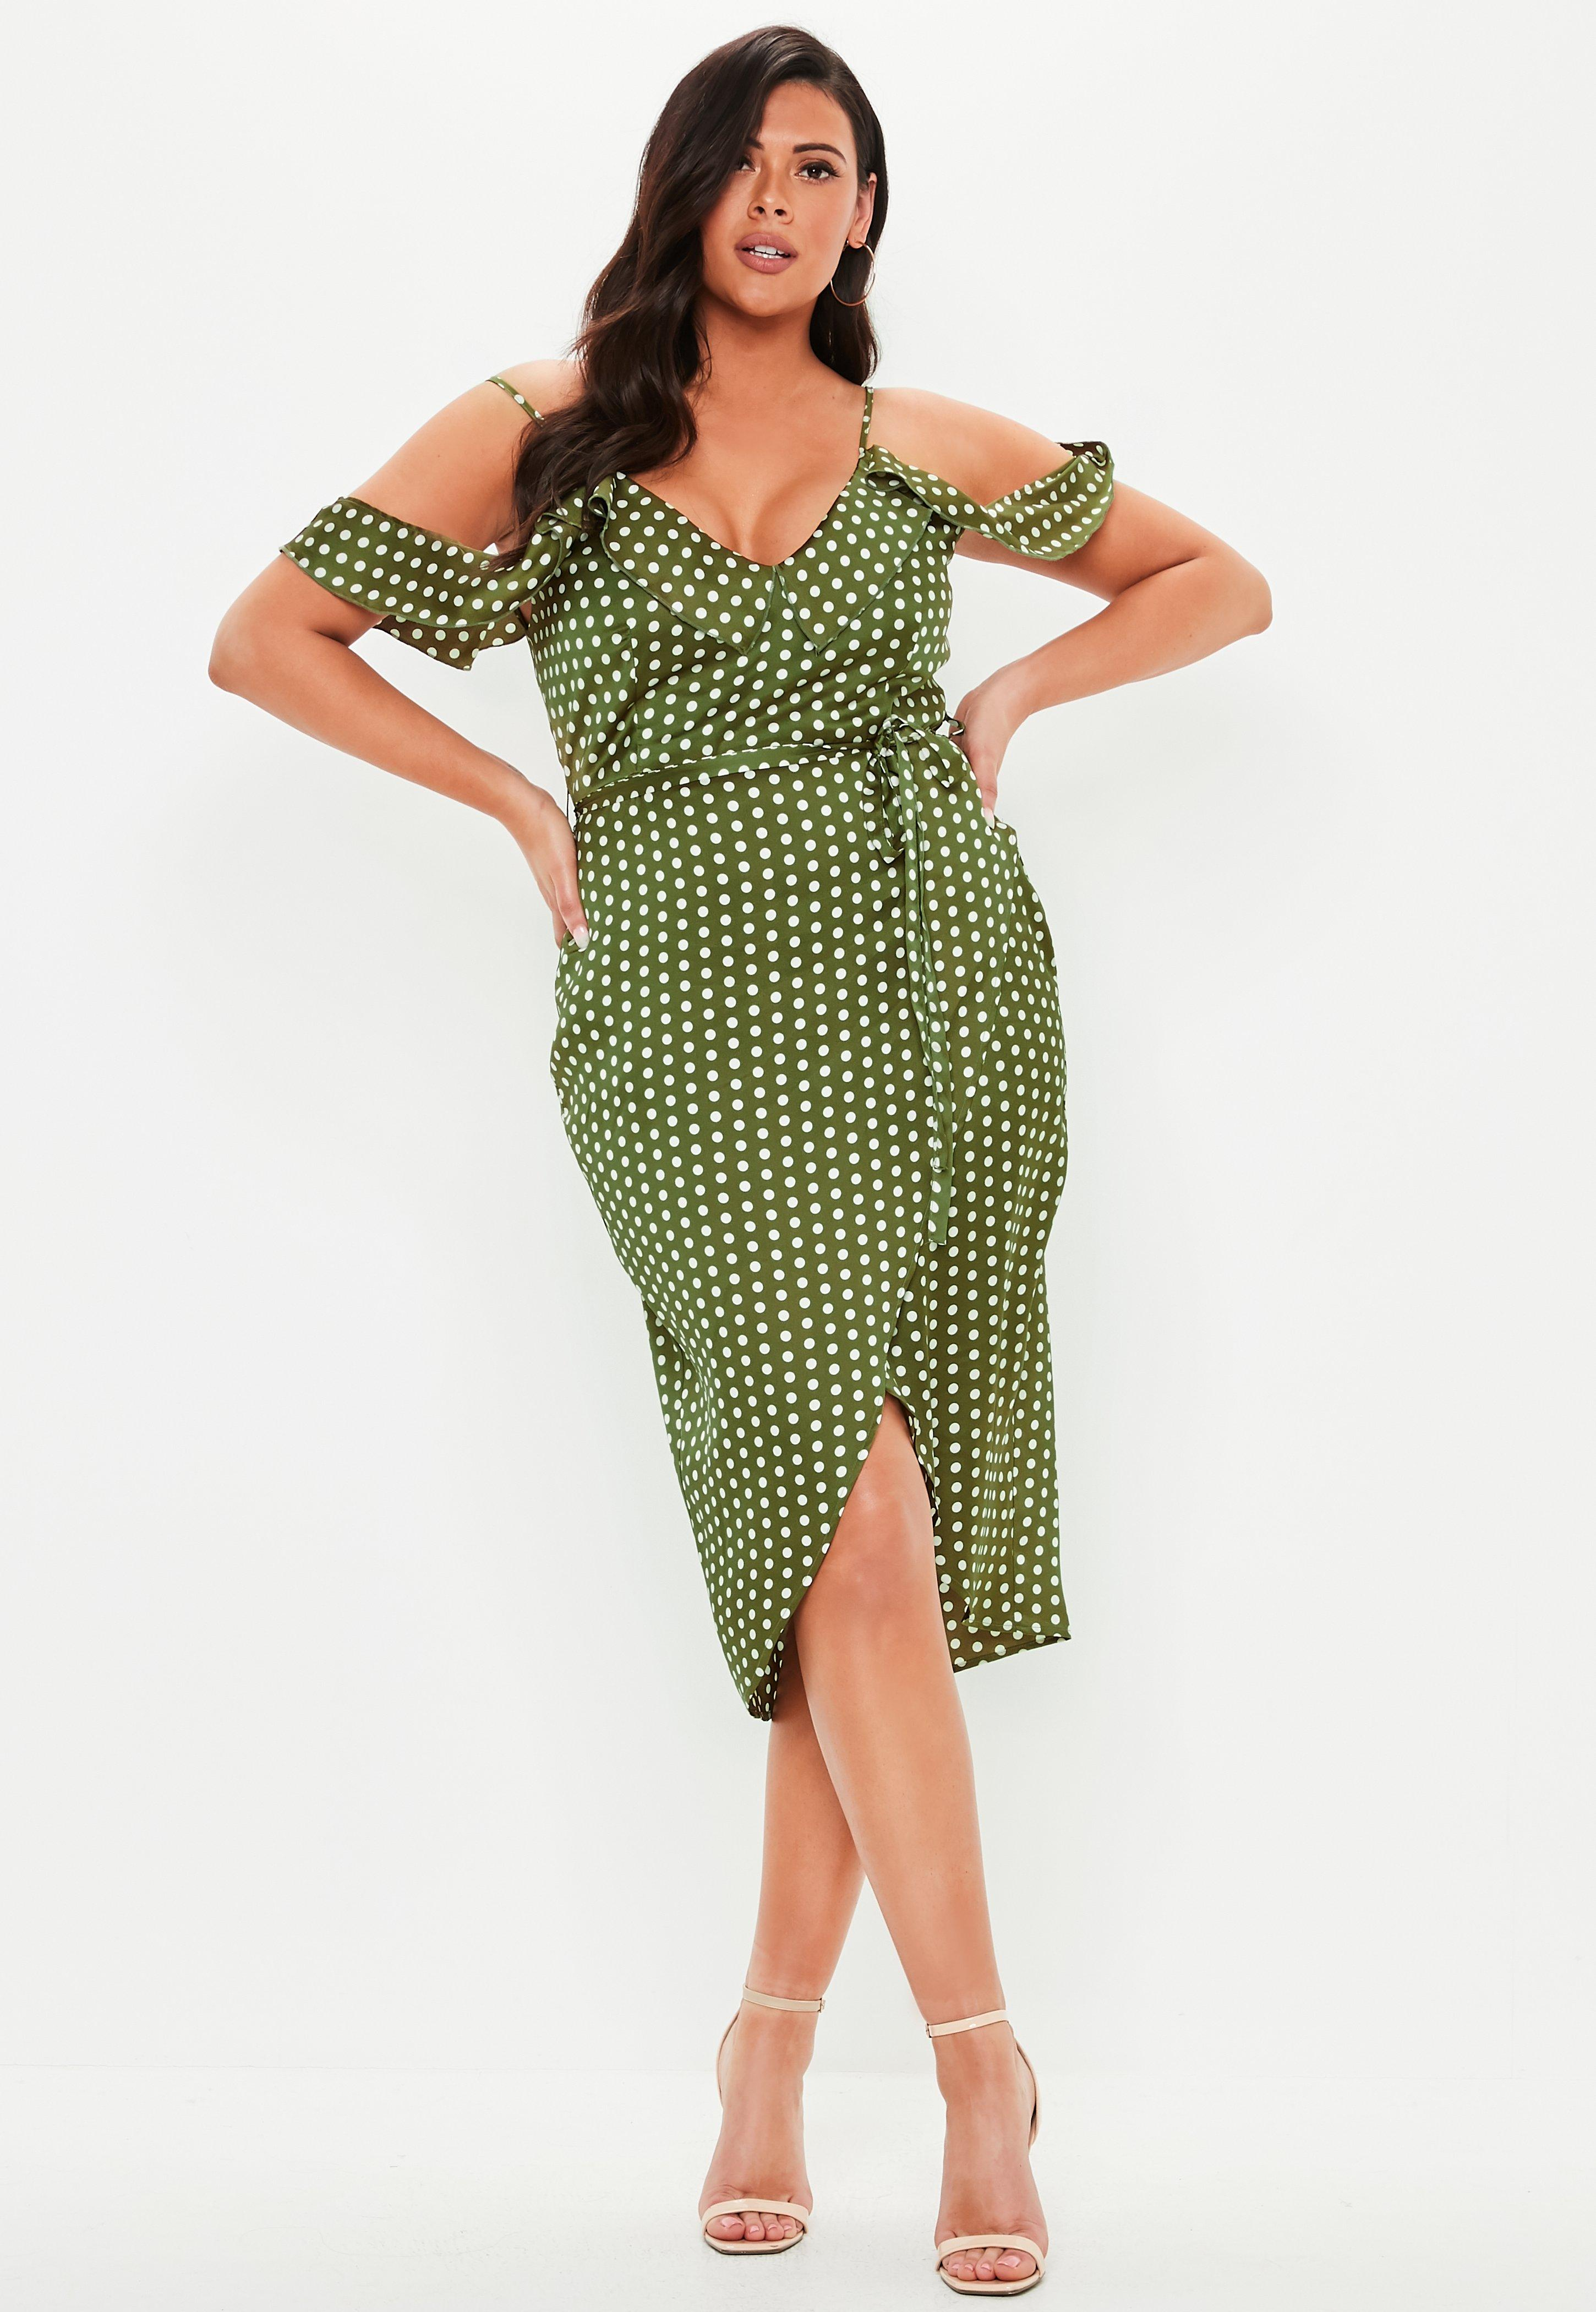 95b39784702 Plus Size Dresses - Formal